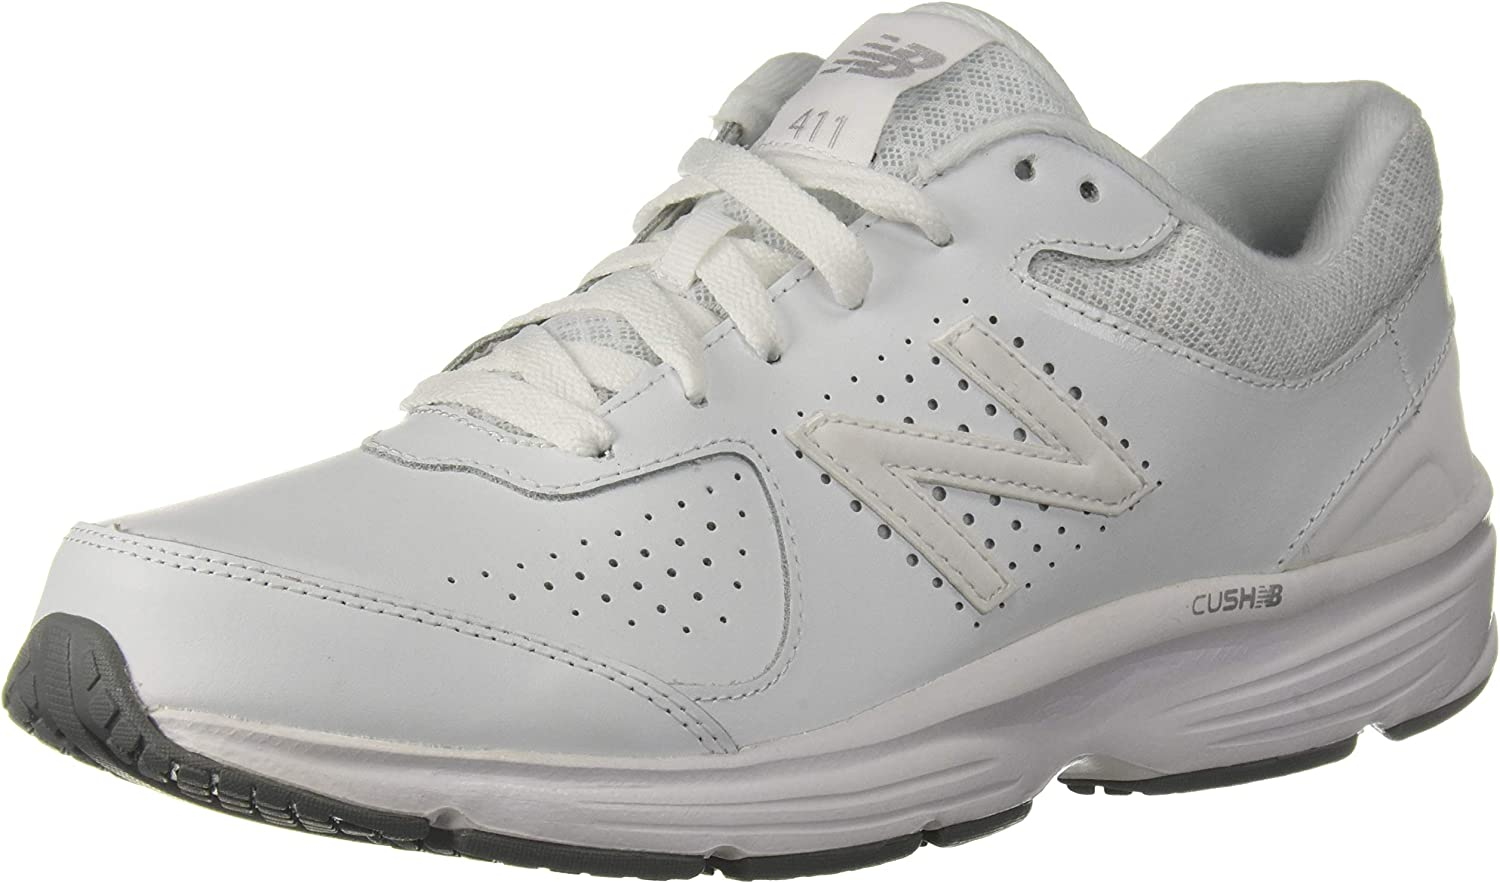 New Balance Men/'s Walking Shoe